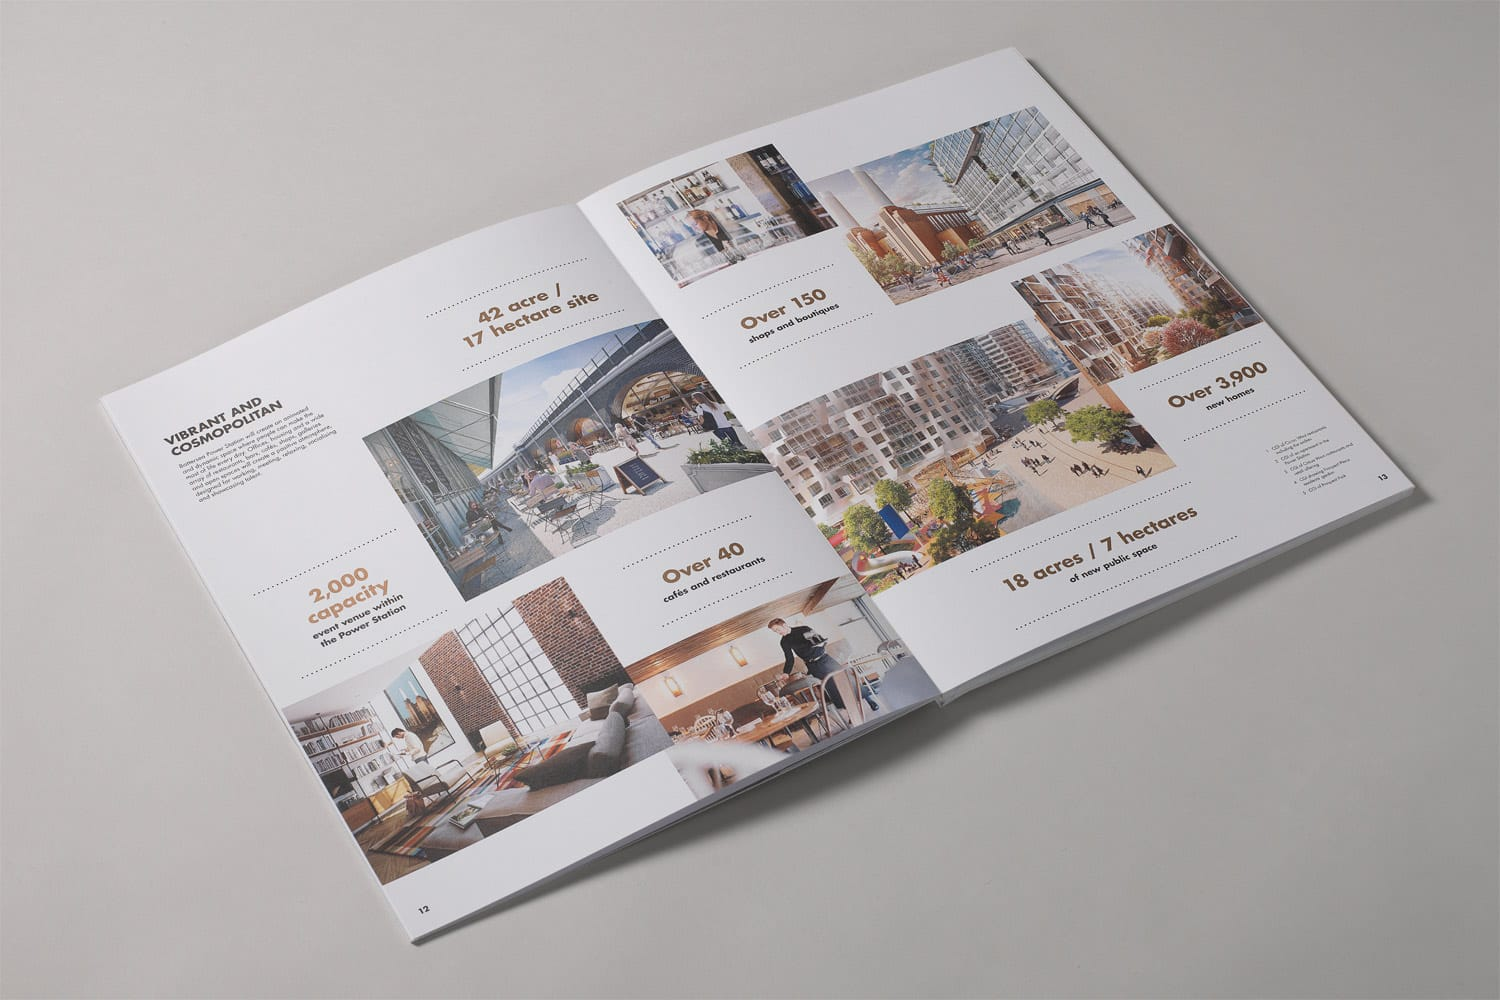 Property Branding for Battersea Power Station Work, Live, Shop, Brochure 10- Wordsearch